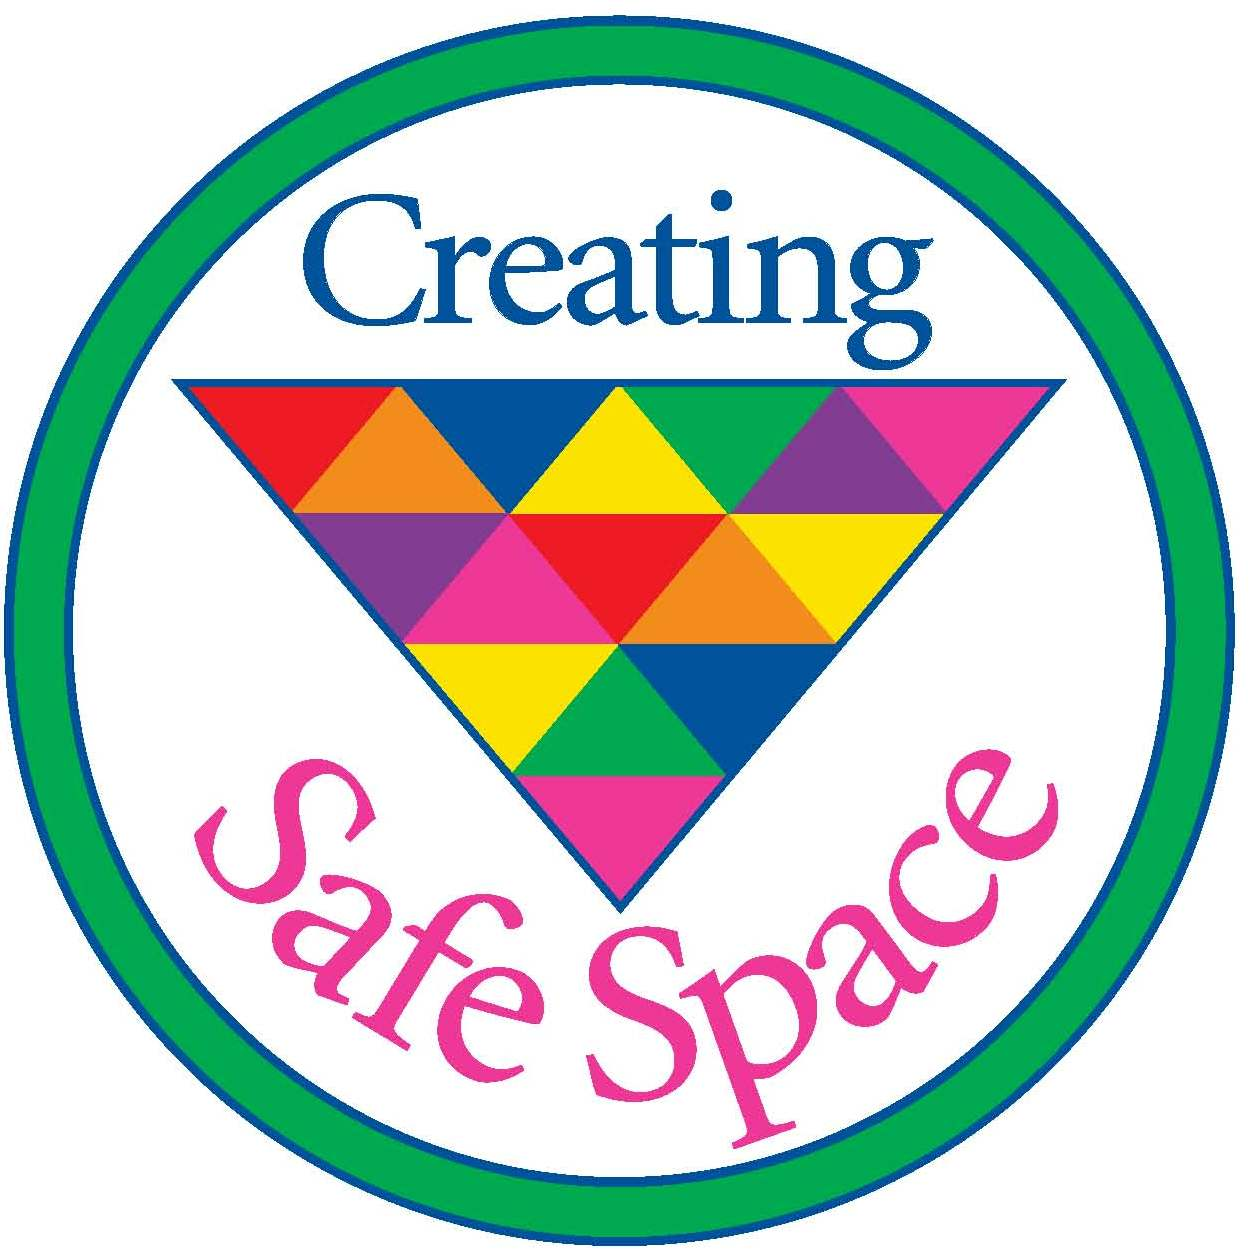 Creating Safe Space For Students After >> New Safe Space Guidelines At University Of Arizona Treat Students